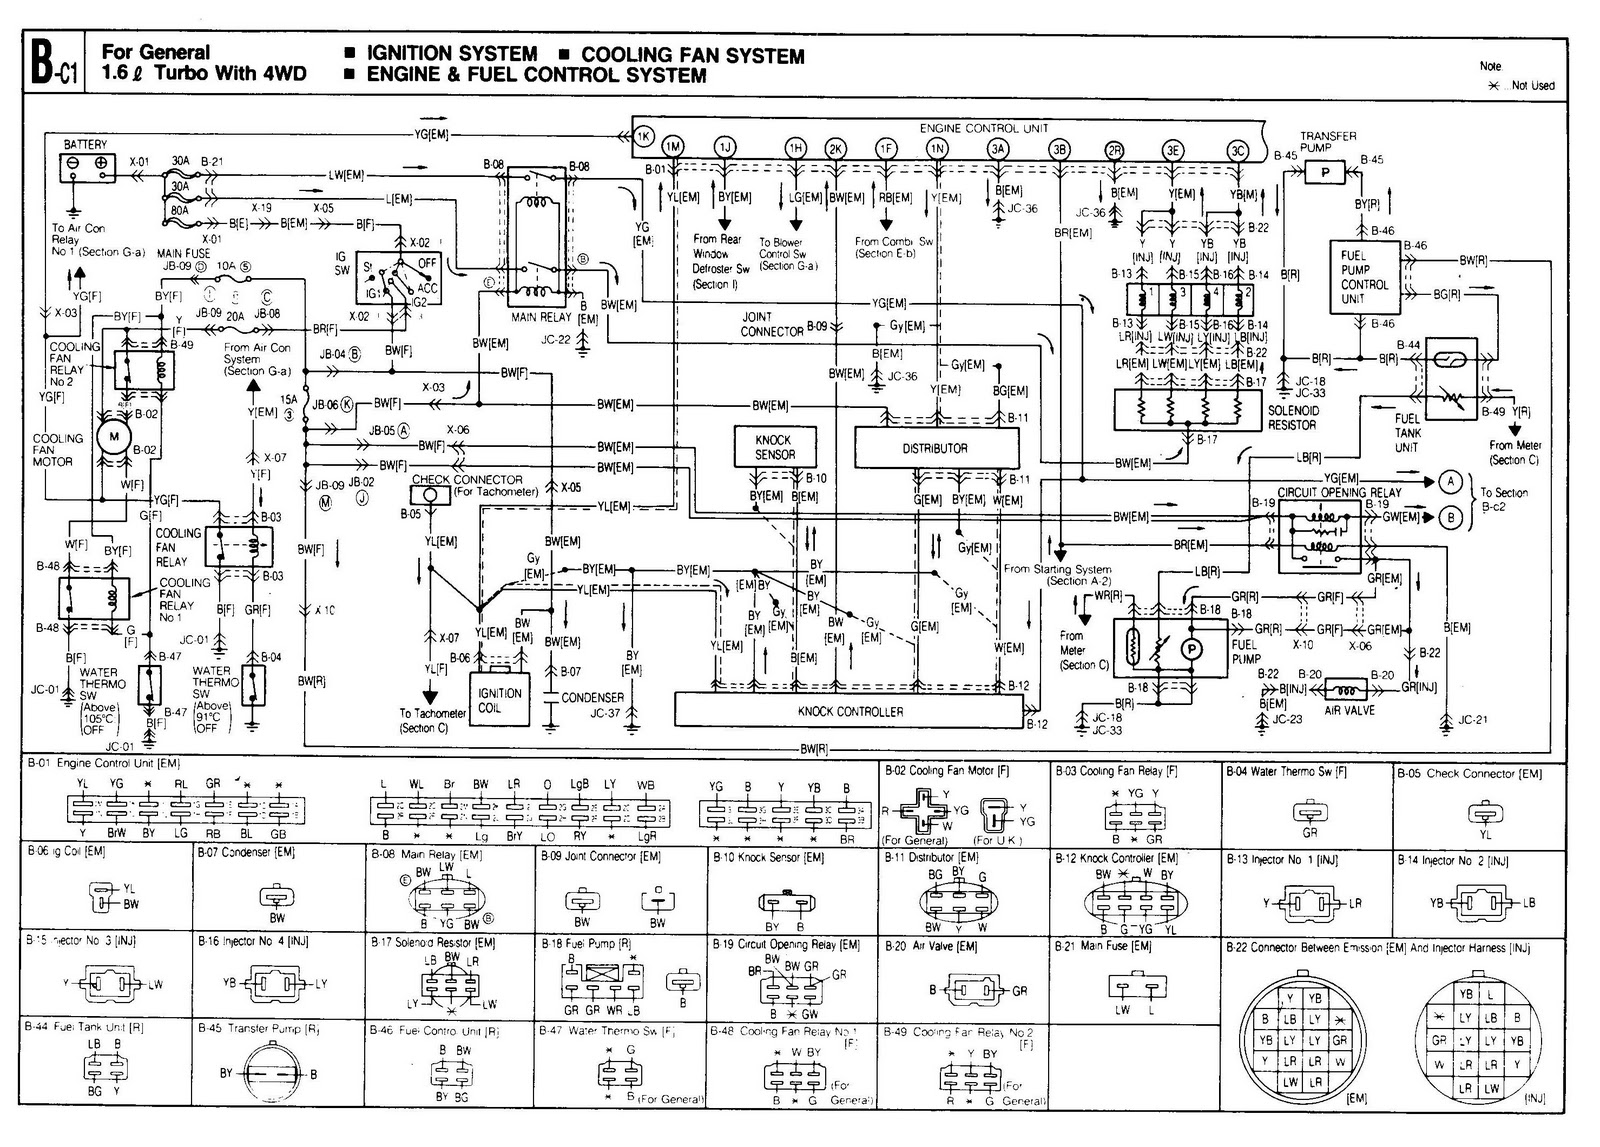 Mazda Understanding Wiring Diagram on subaru electrical diagrams